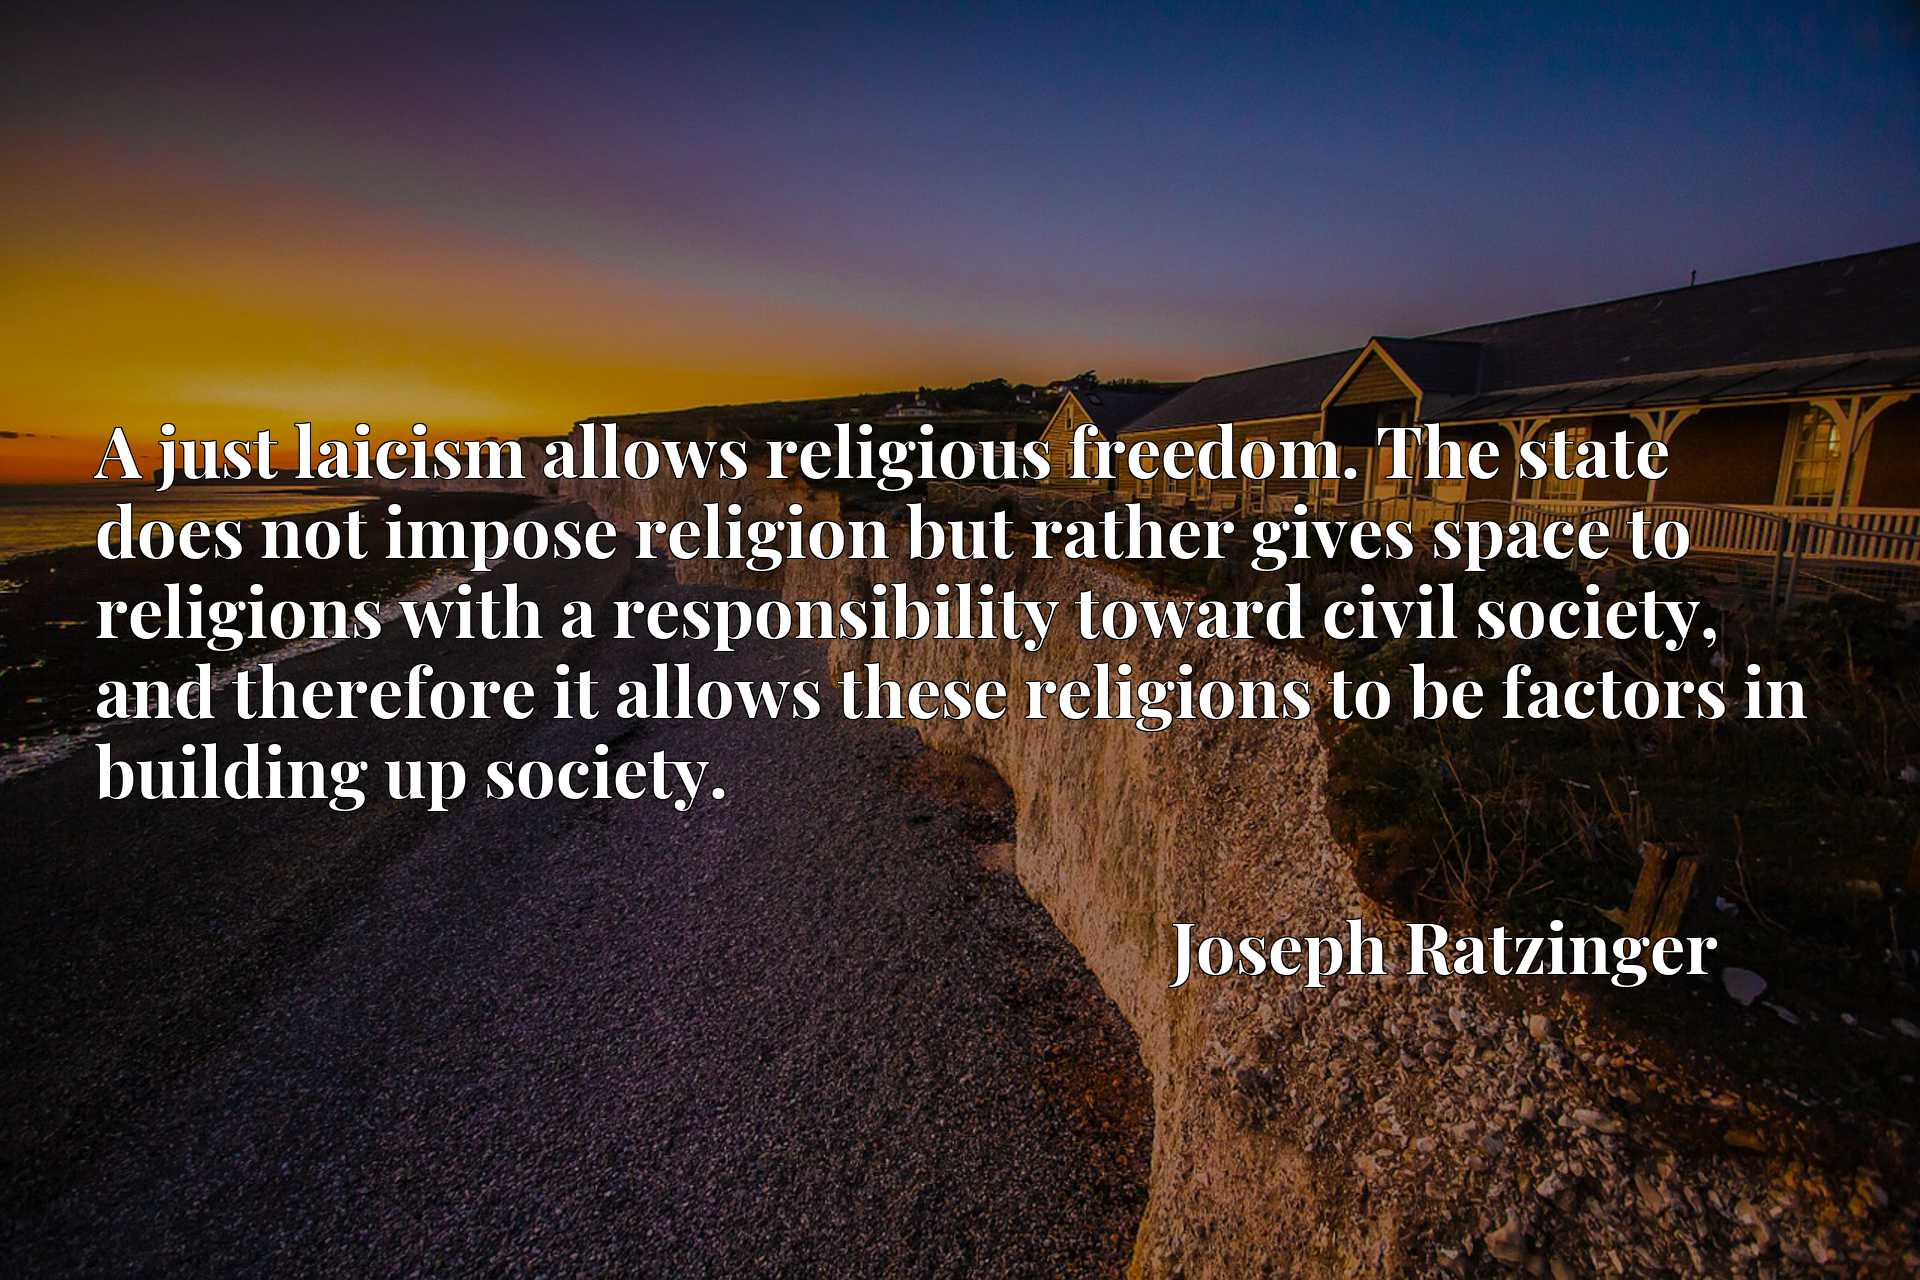 A just laicism allows religious freedom. The state does not impose religion but rather gives space to religions with a responsibility toward civil society, and therefore it allows these religions to be factors in building up society.